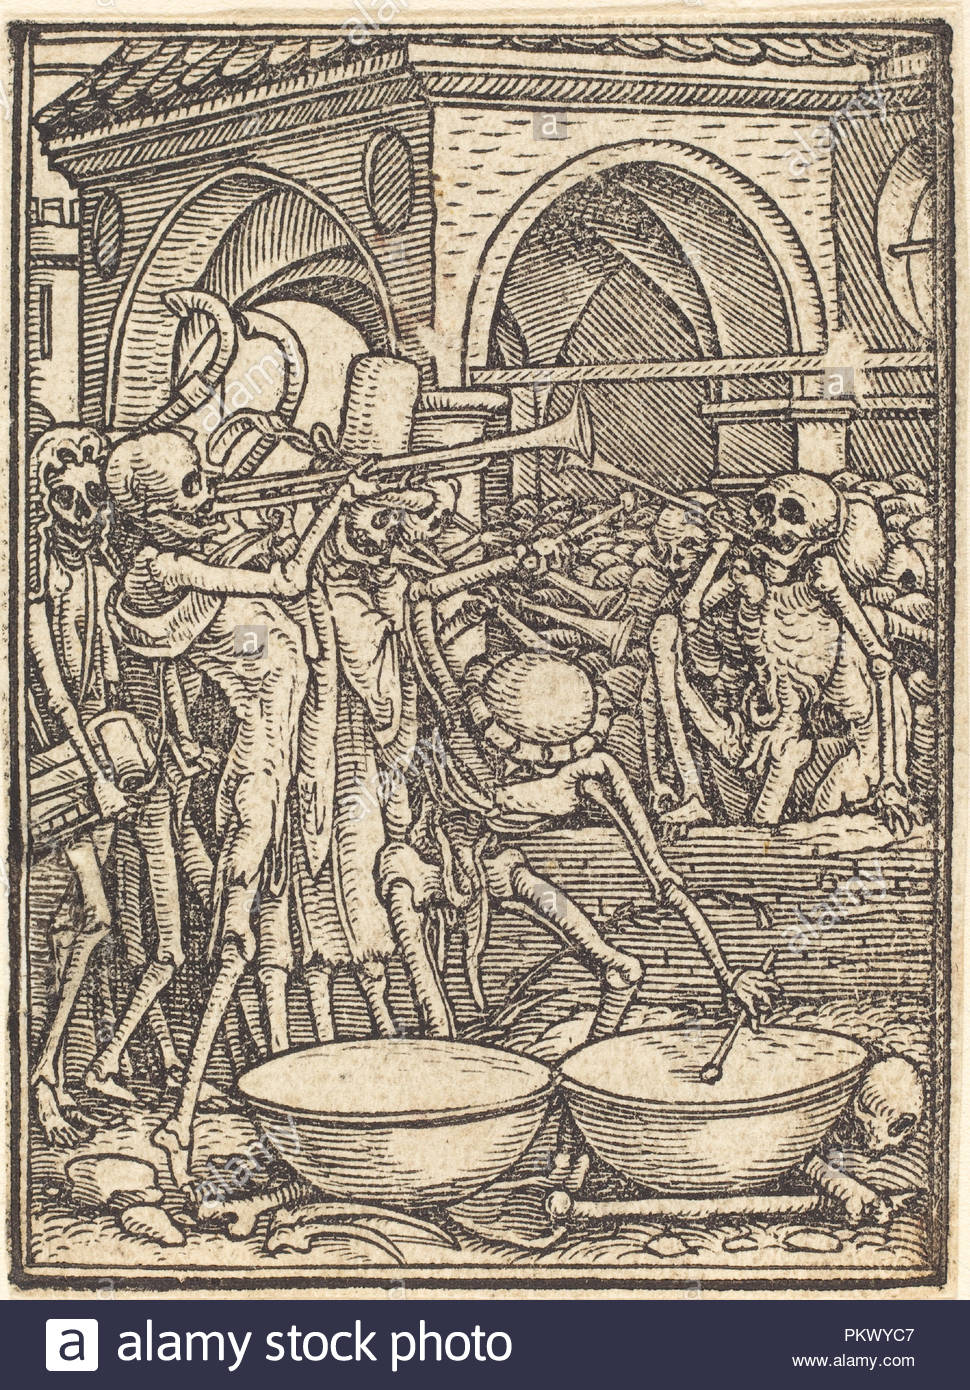 End of Mankind. Medium: woodcut. Museum: National Gallery of Art, Washington DC. Author: Hans Holbein the Younger. - Stock Image